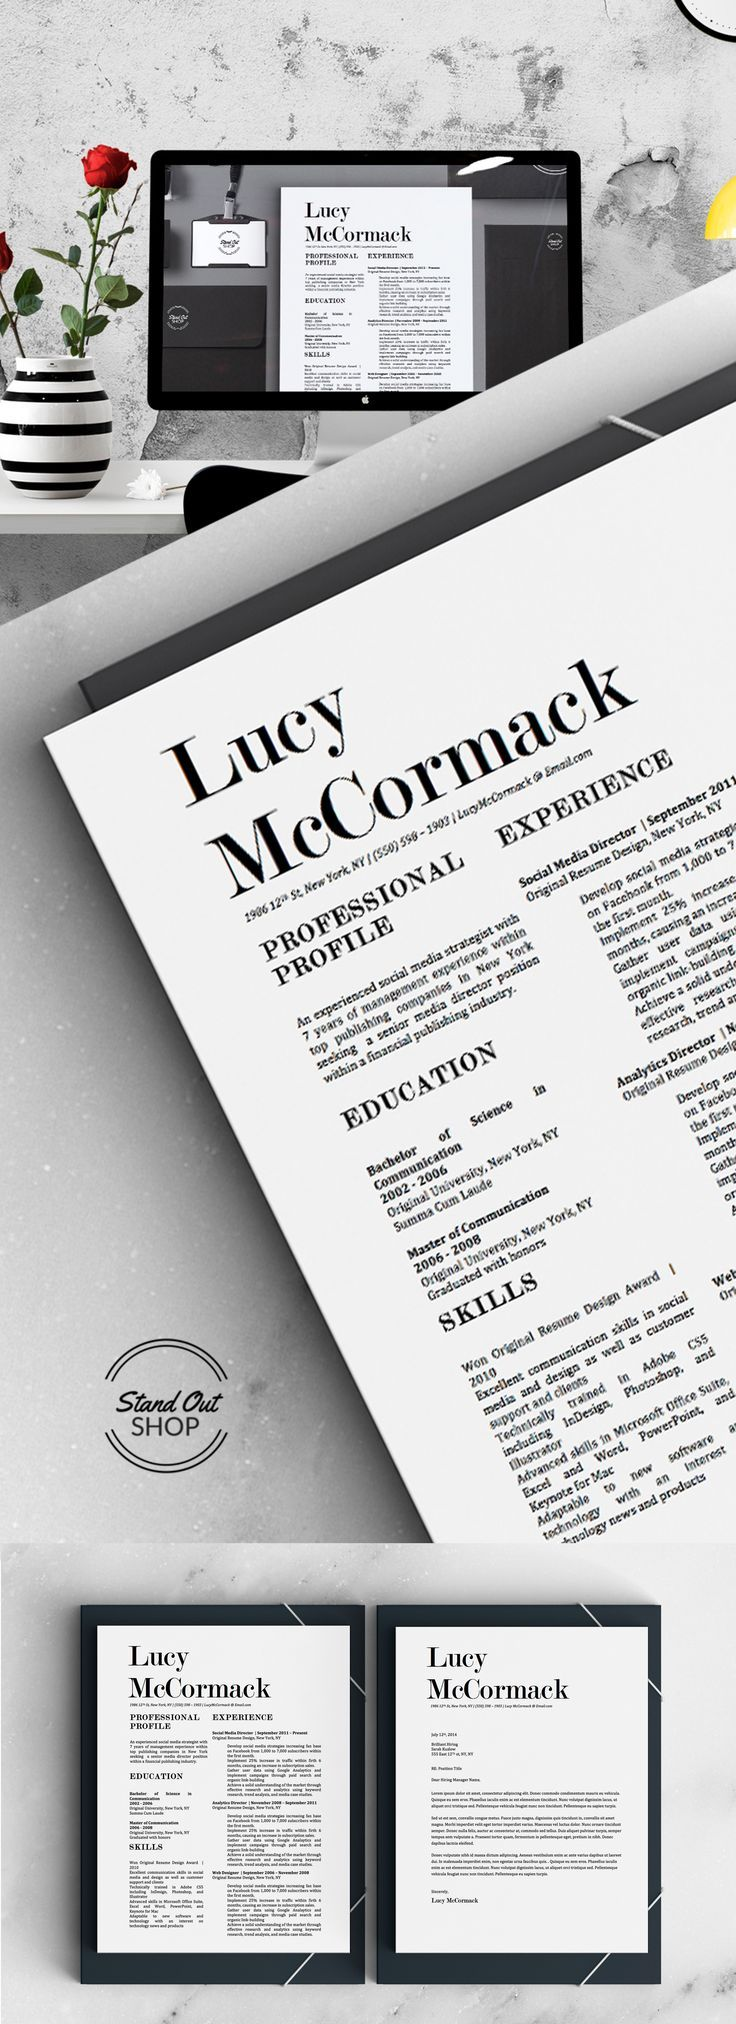 Modern resume design with matching cover letter for Microsoft Word ...